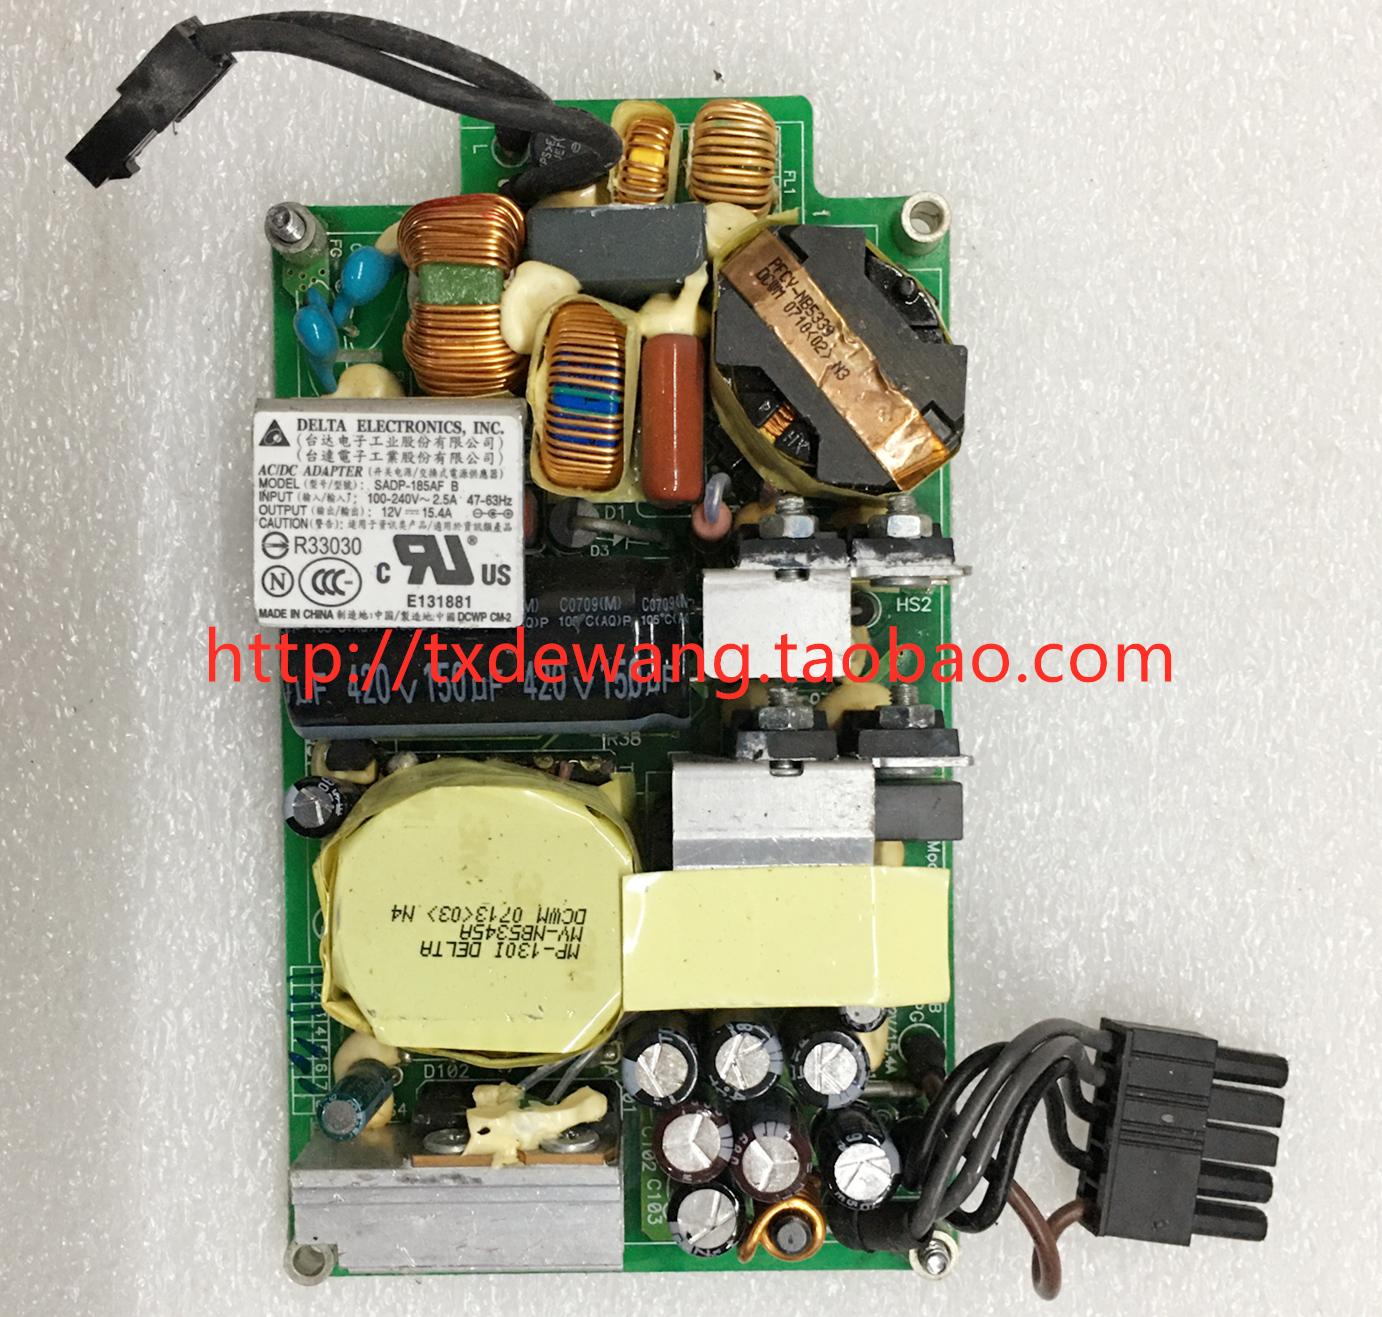 SADP-185AF B Apple imac supply power board